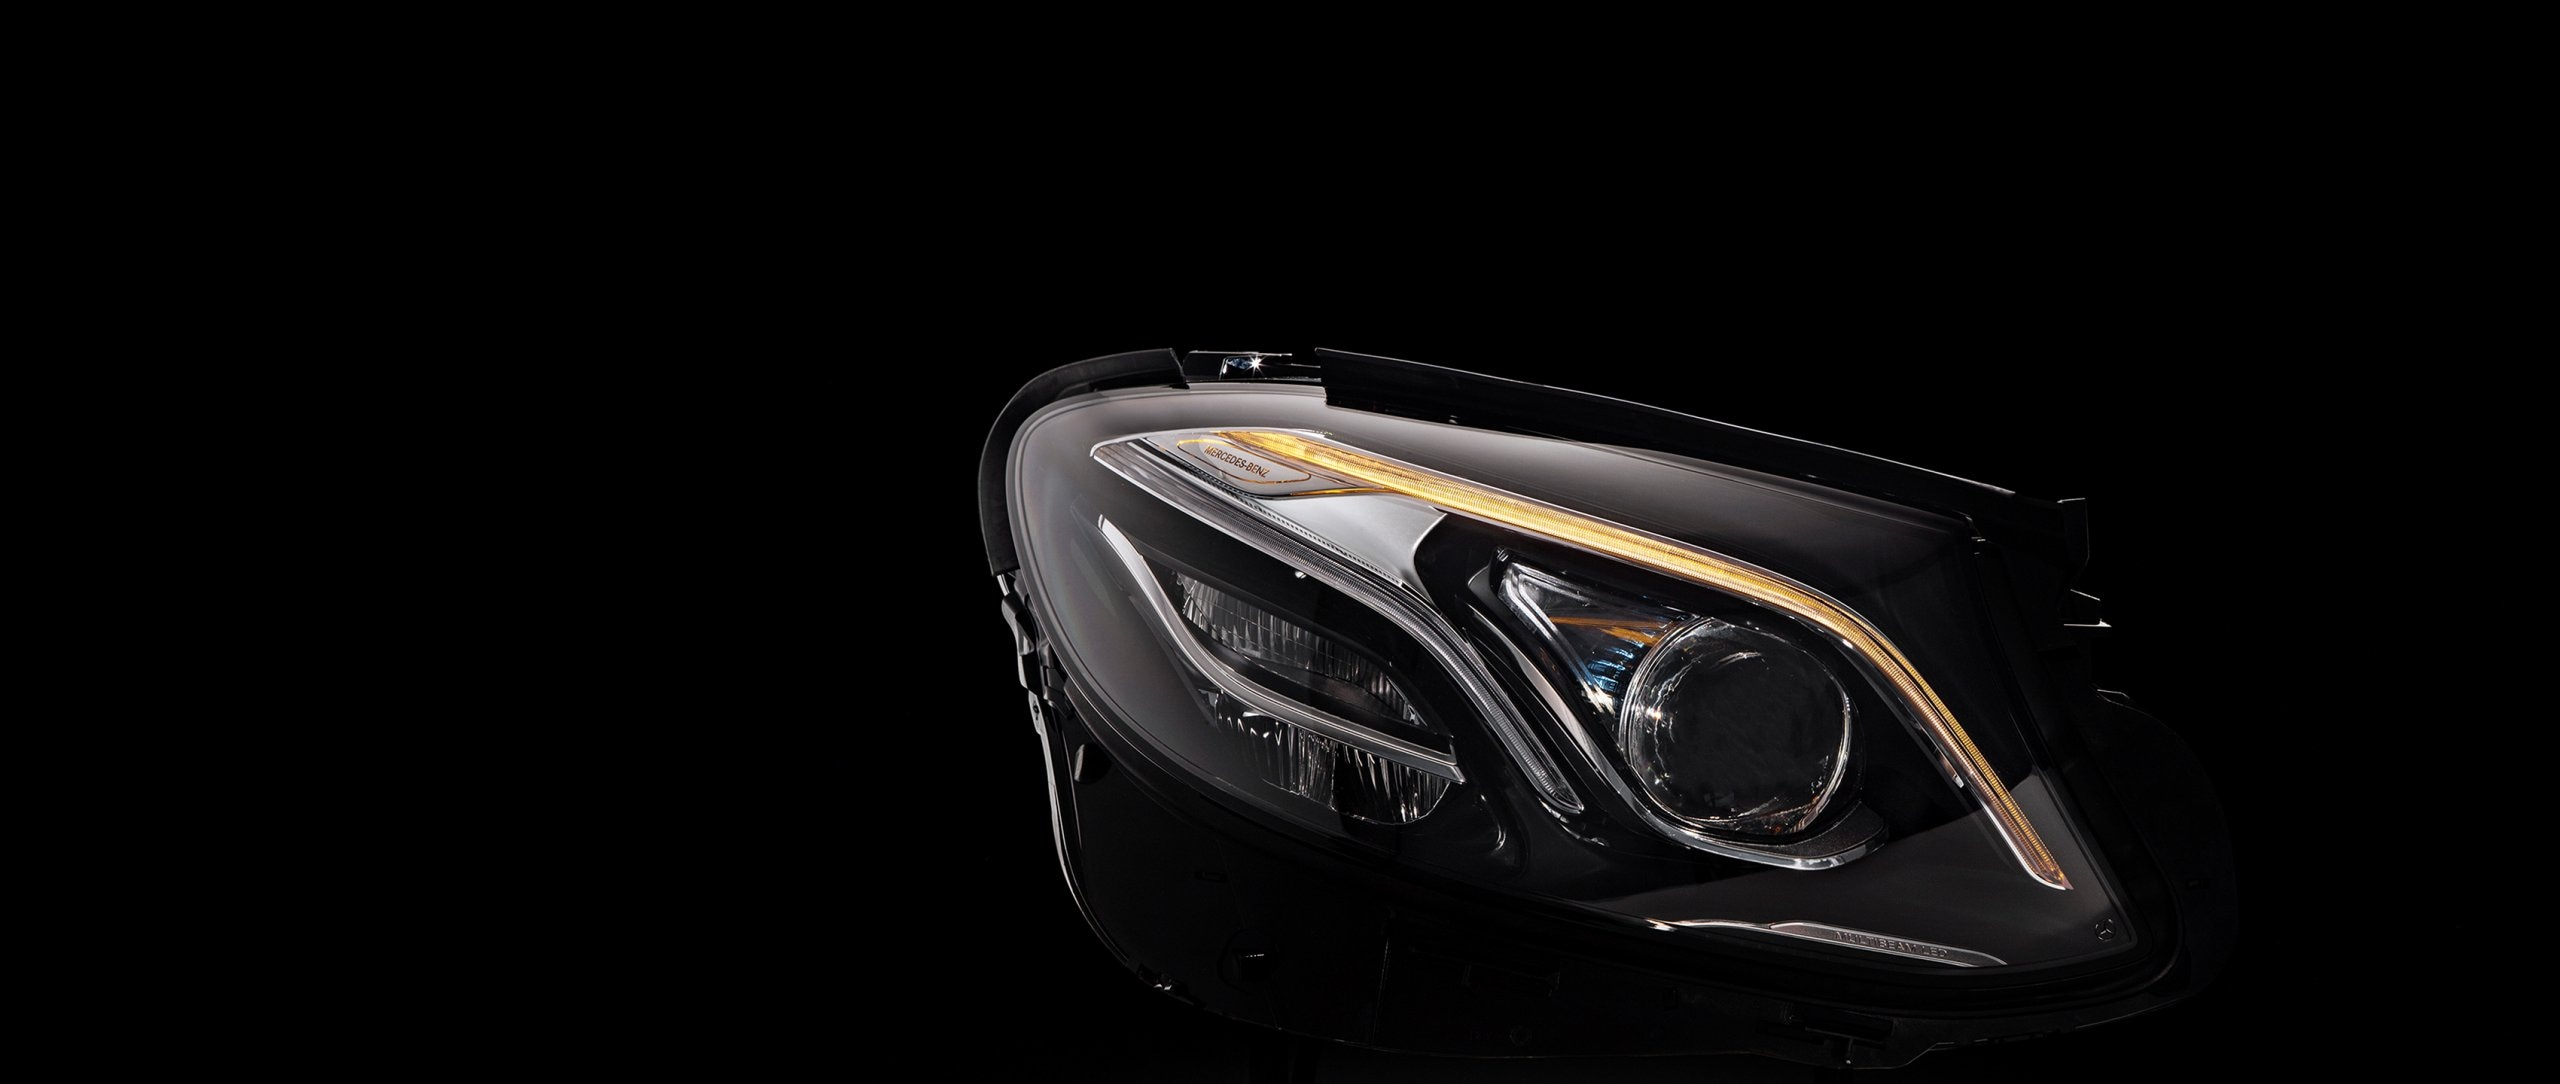 let there be light the led headlamps of the new mercedes benz e class mercedes benz e class